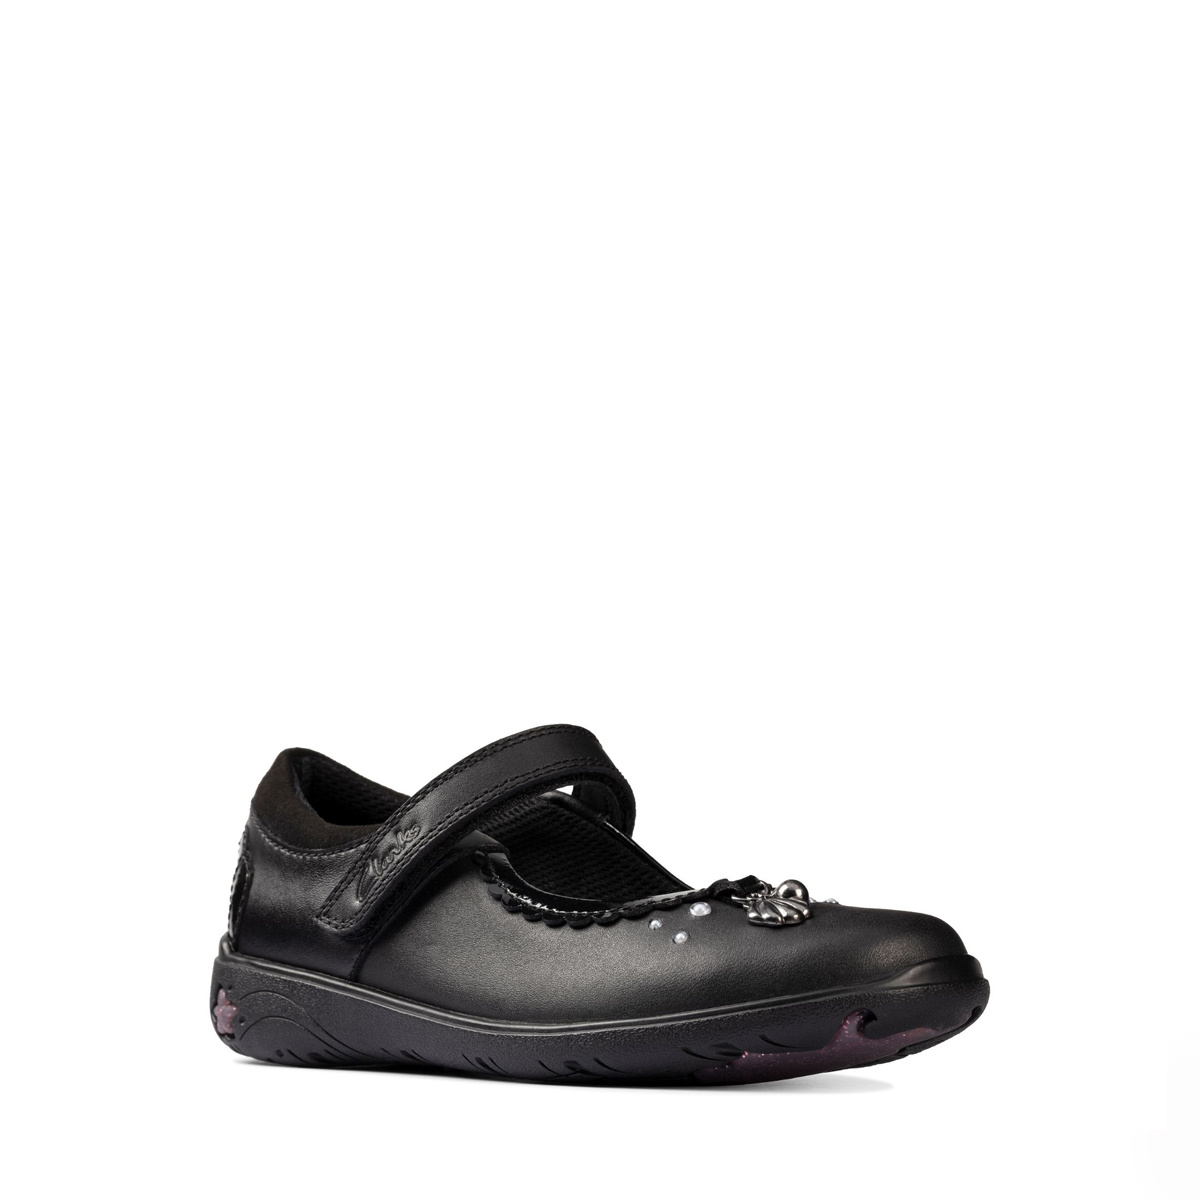 Clarks Sea Shimmer Leather Junior